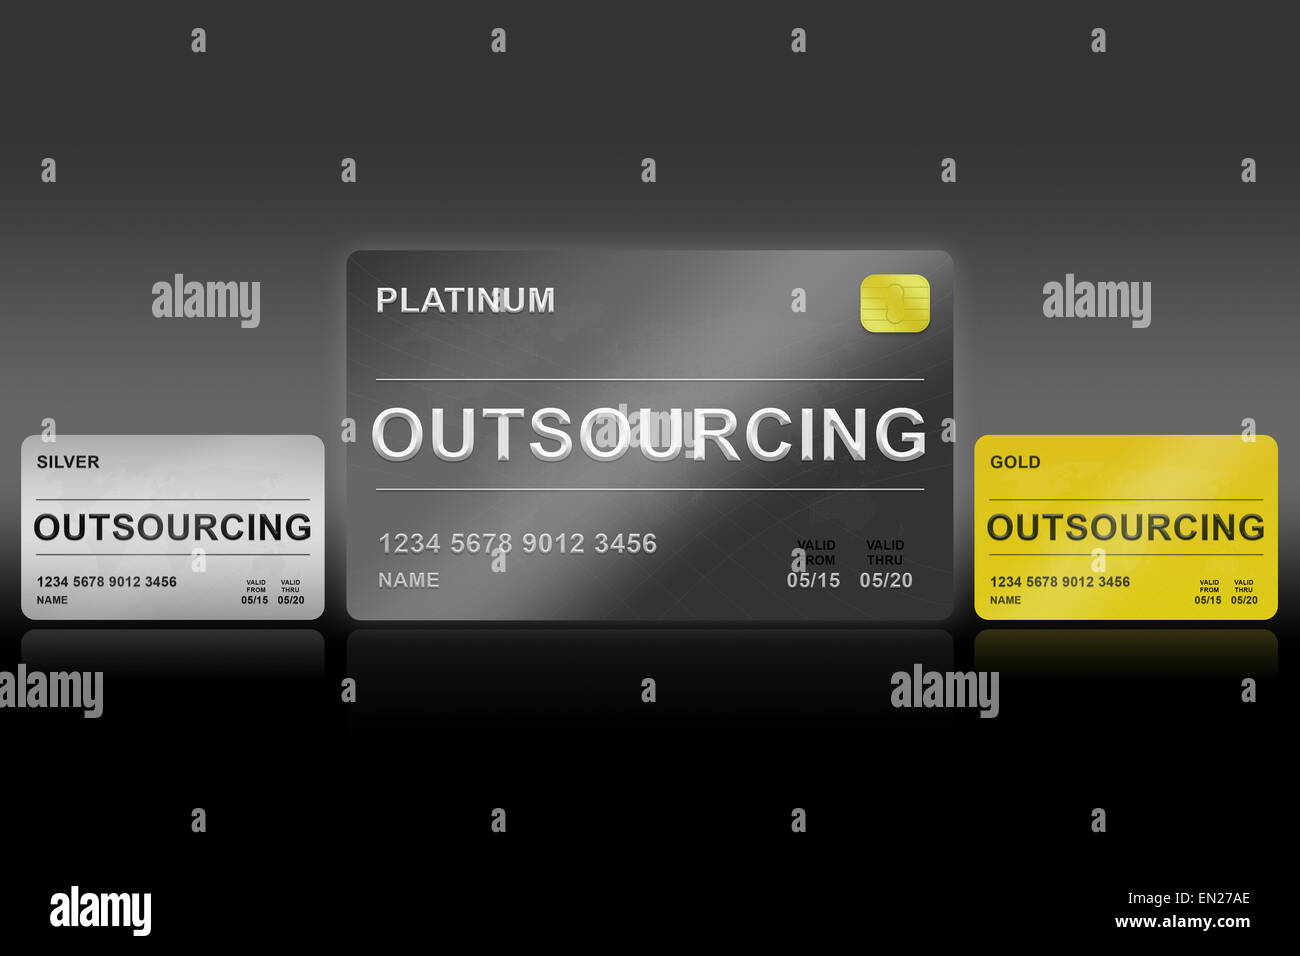 outsourcing platinum card on black background - Stock Image